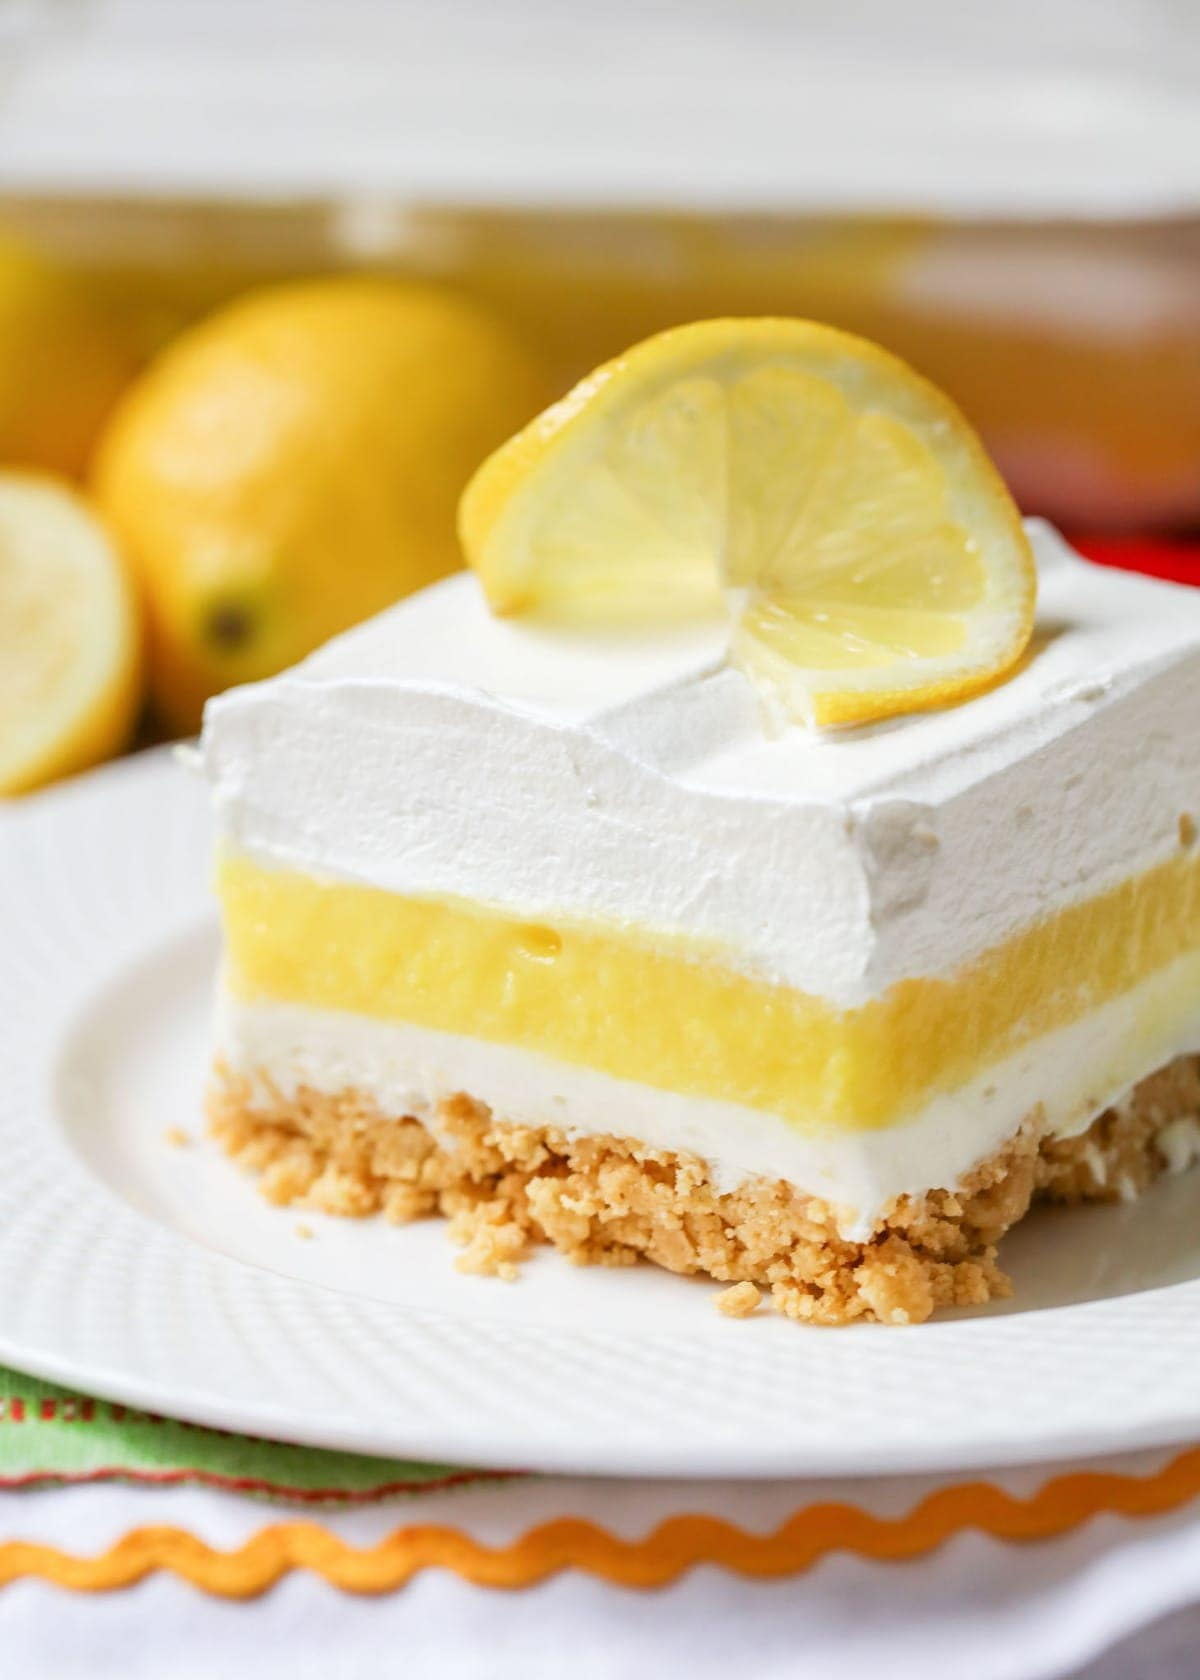 Lemon Lasagna topped with a lemon slice on a white plate